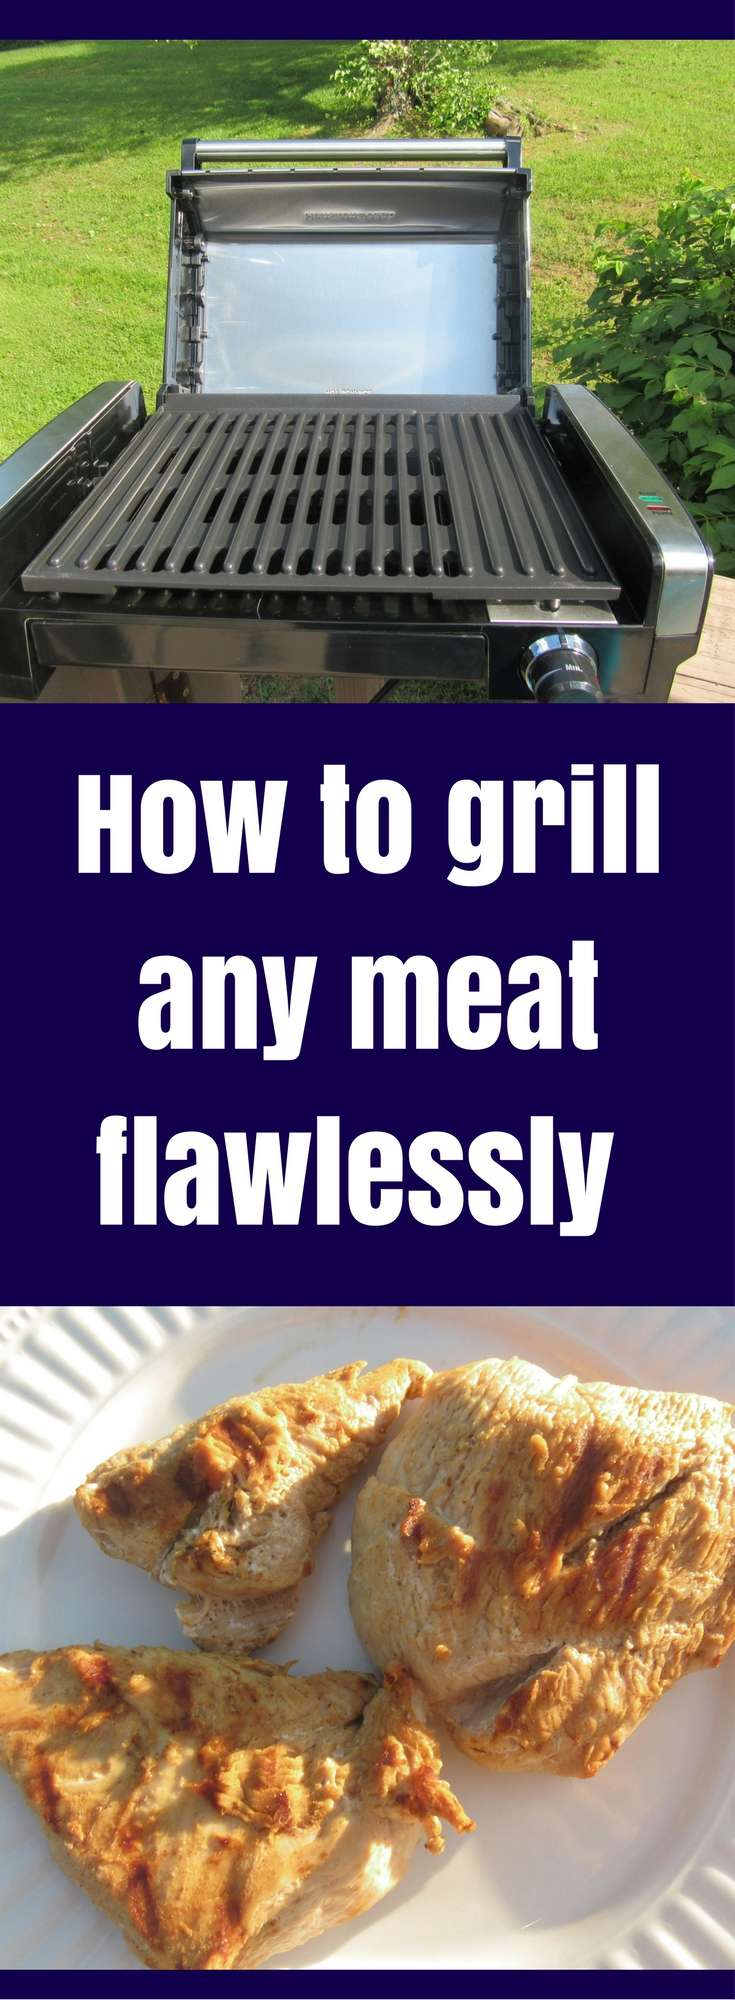 How to Grill Any Meat Flawlessly   Grilling Tips   Marinating Tips   Grilled Steaks   Grilled Burgers   Cookout Tips   Grilled Chicken   Grilling Recipes   How to Grill AD #GrillIt